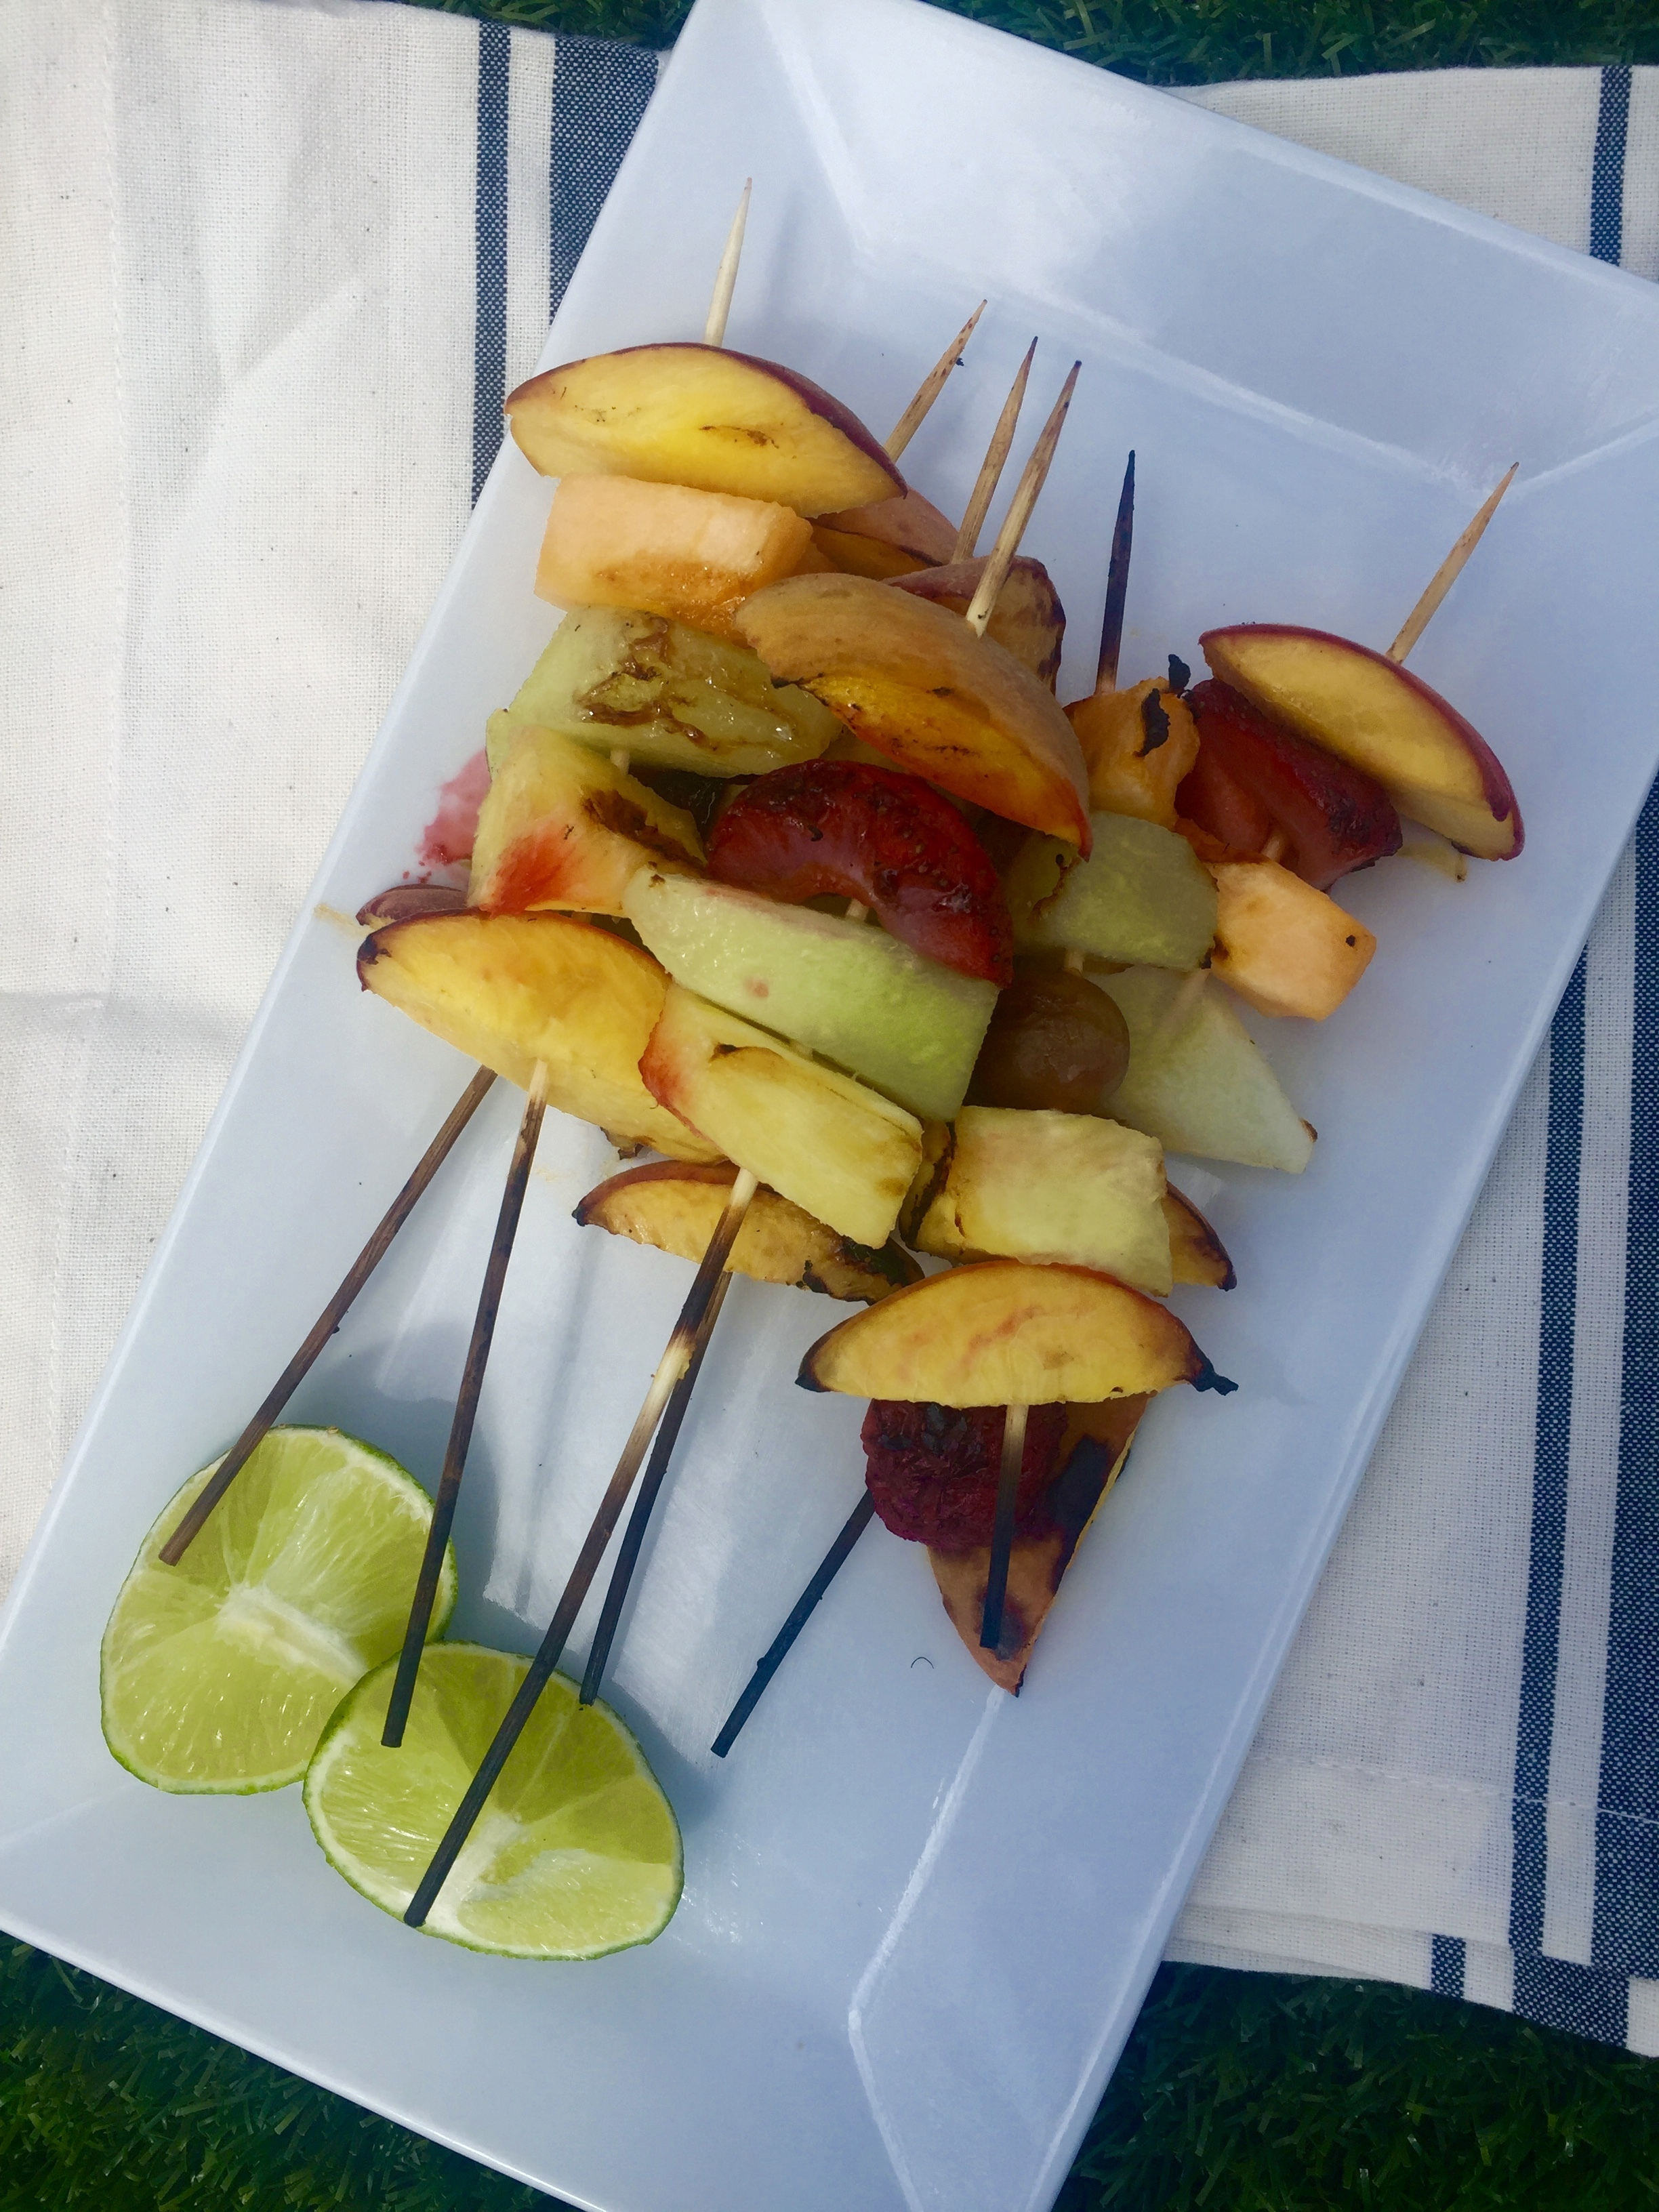 Snack Hacks: Grilled Fruit Kebobs